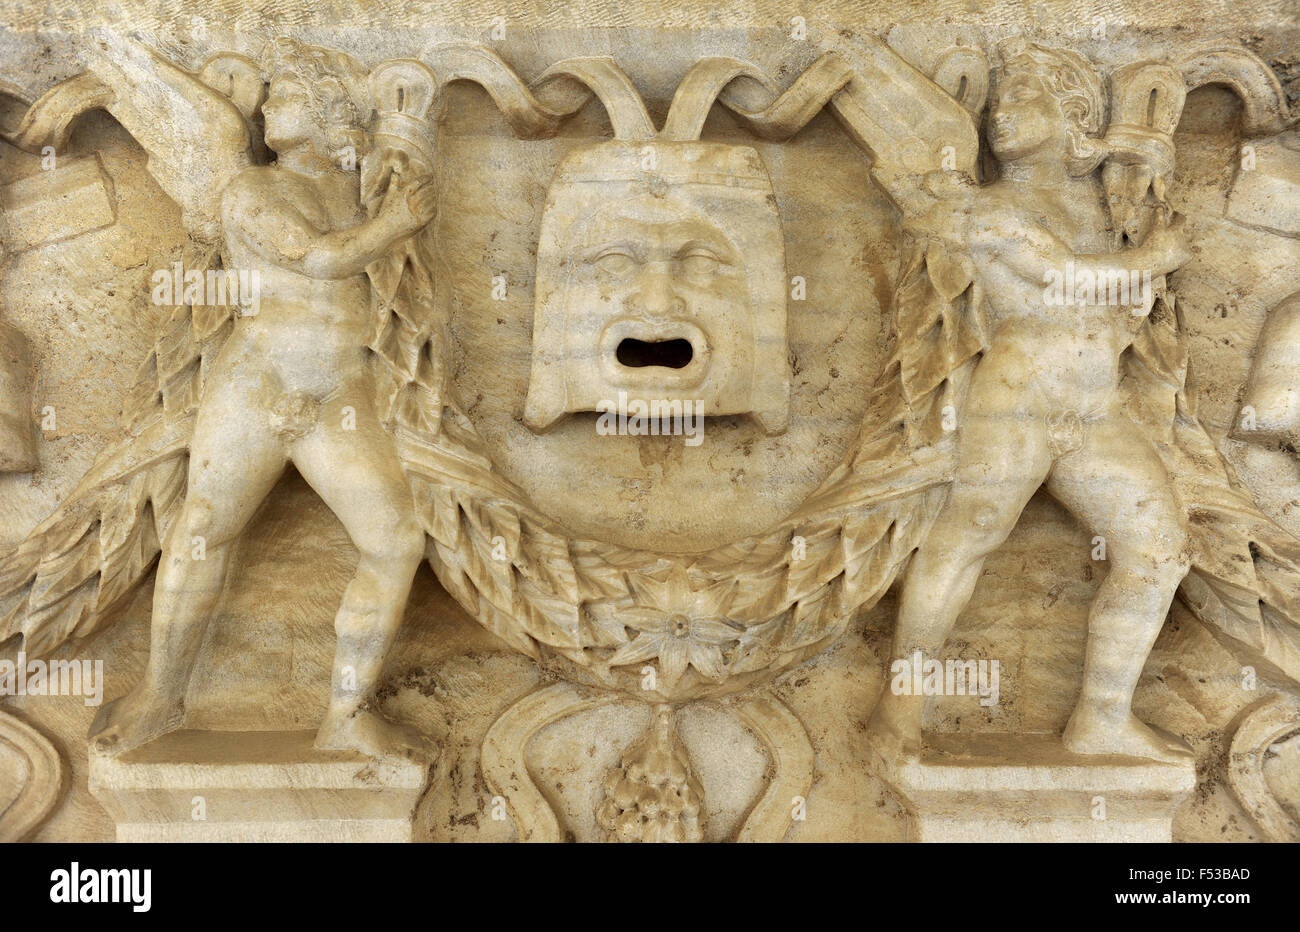 Garland sarcophagus. Marble. Tel Mevorah. Roman period, 3rd century CE. Detail. The open-mouthed mask indicates - Stock Image